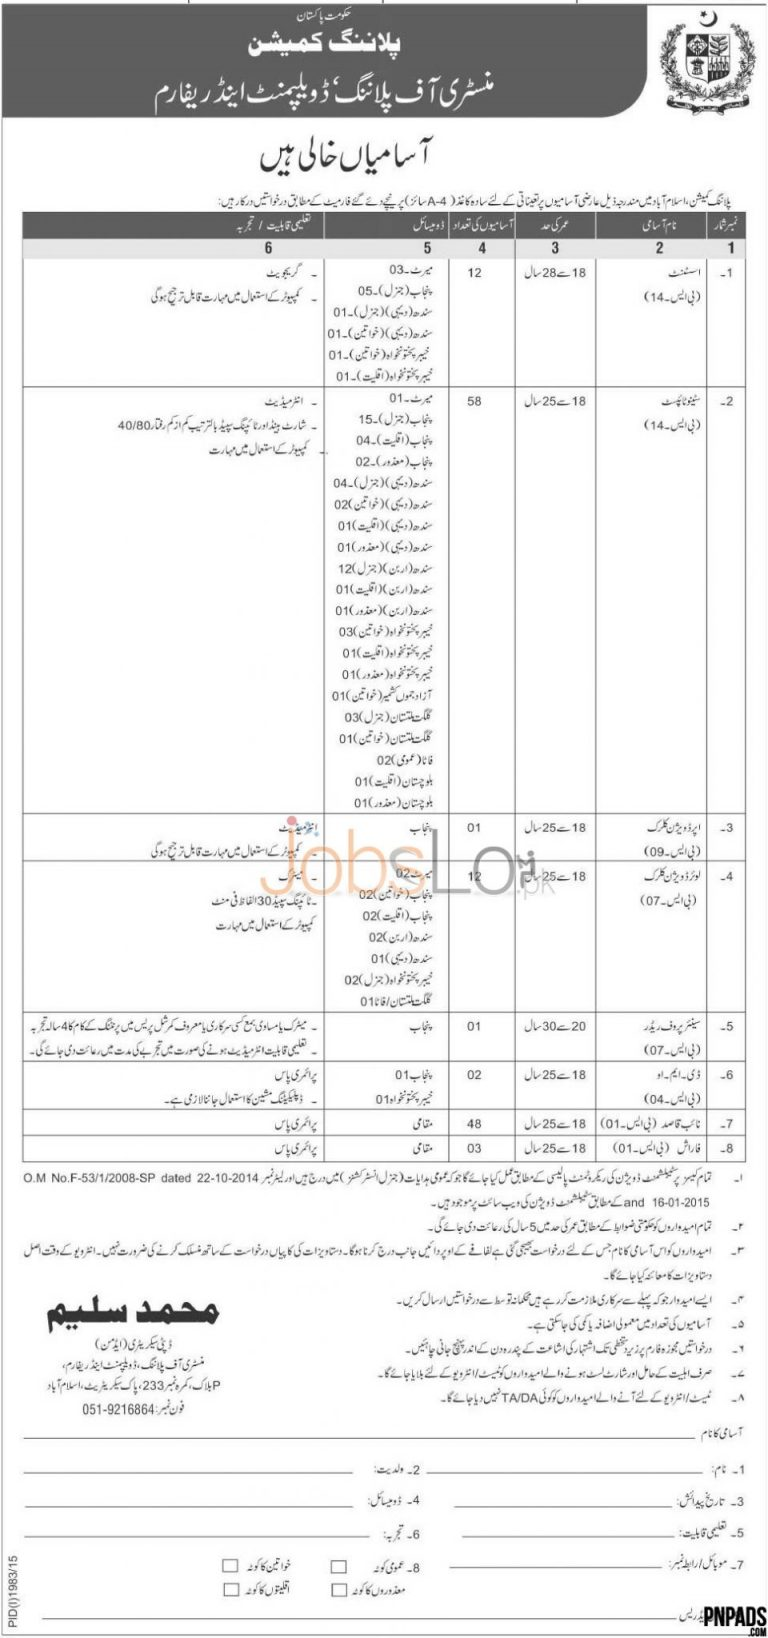 Ministry of Planning Development & Reforms Islamabad Jobs 2016 UTS Form Latest Add